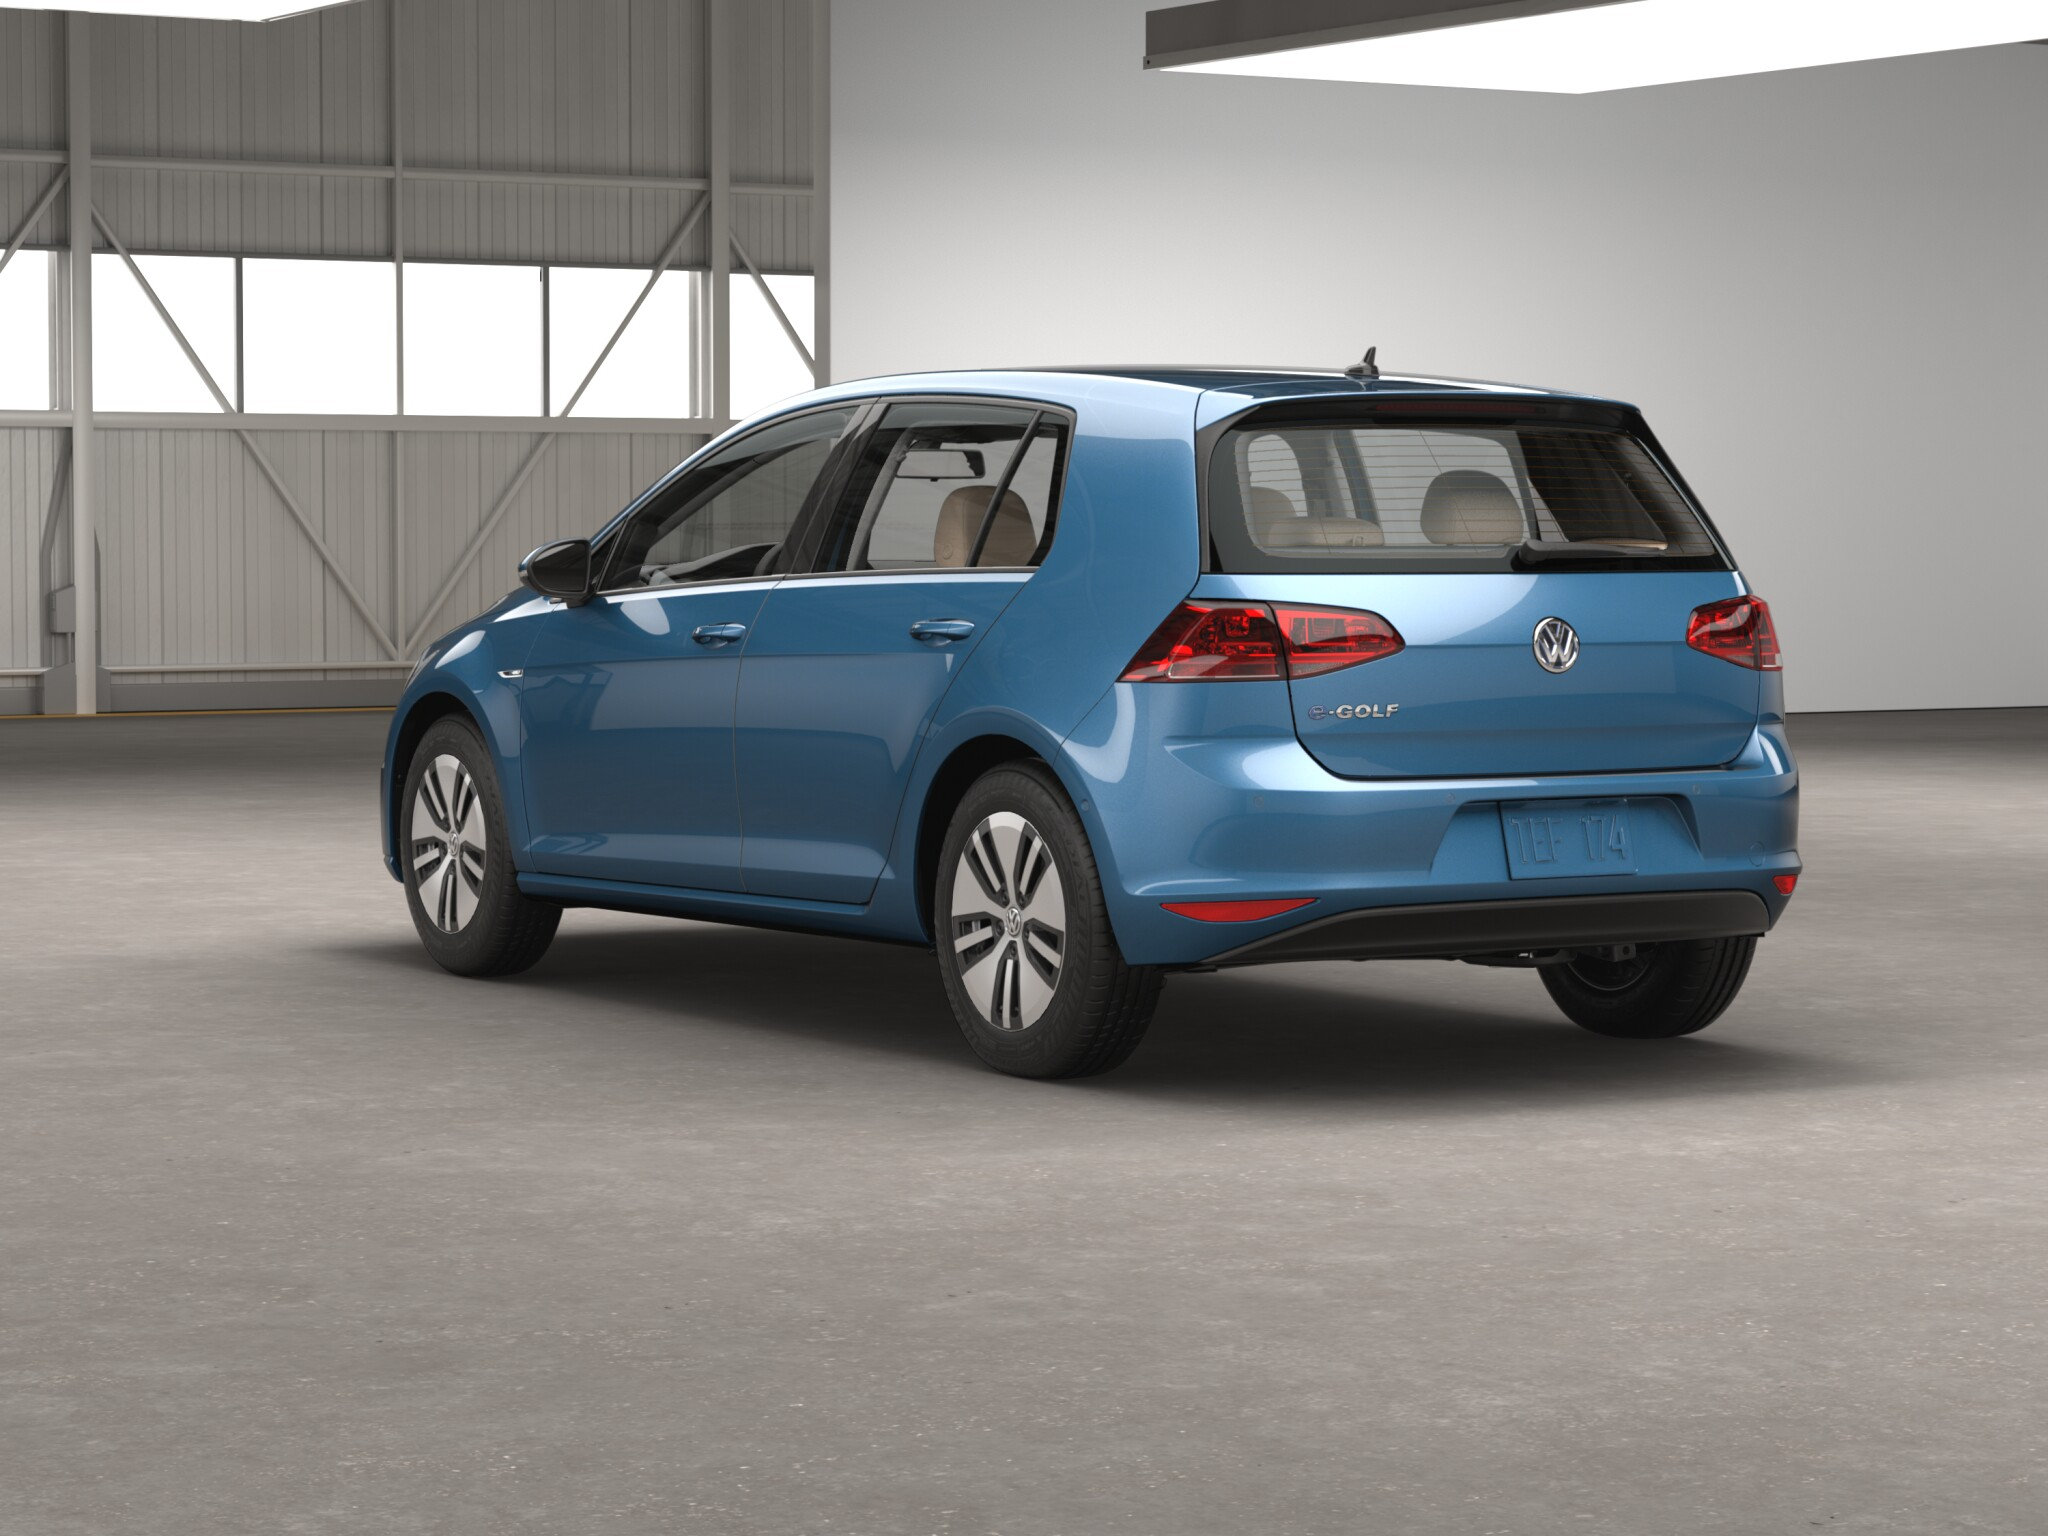 2016 Volkswagen E Golf Preview (Photo 8 of 11)